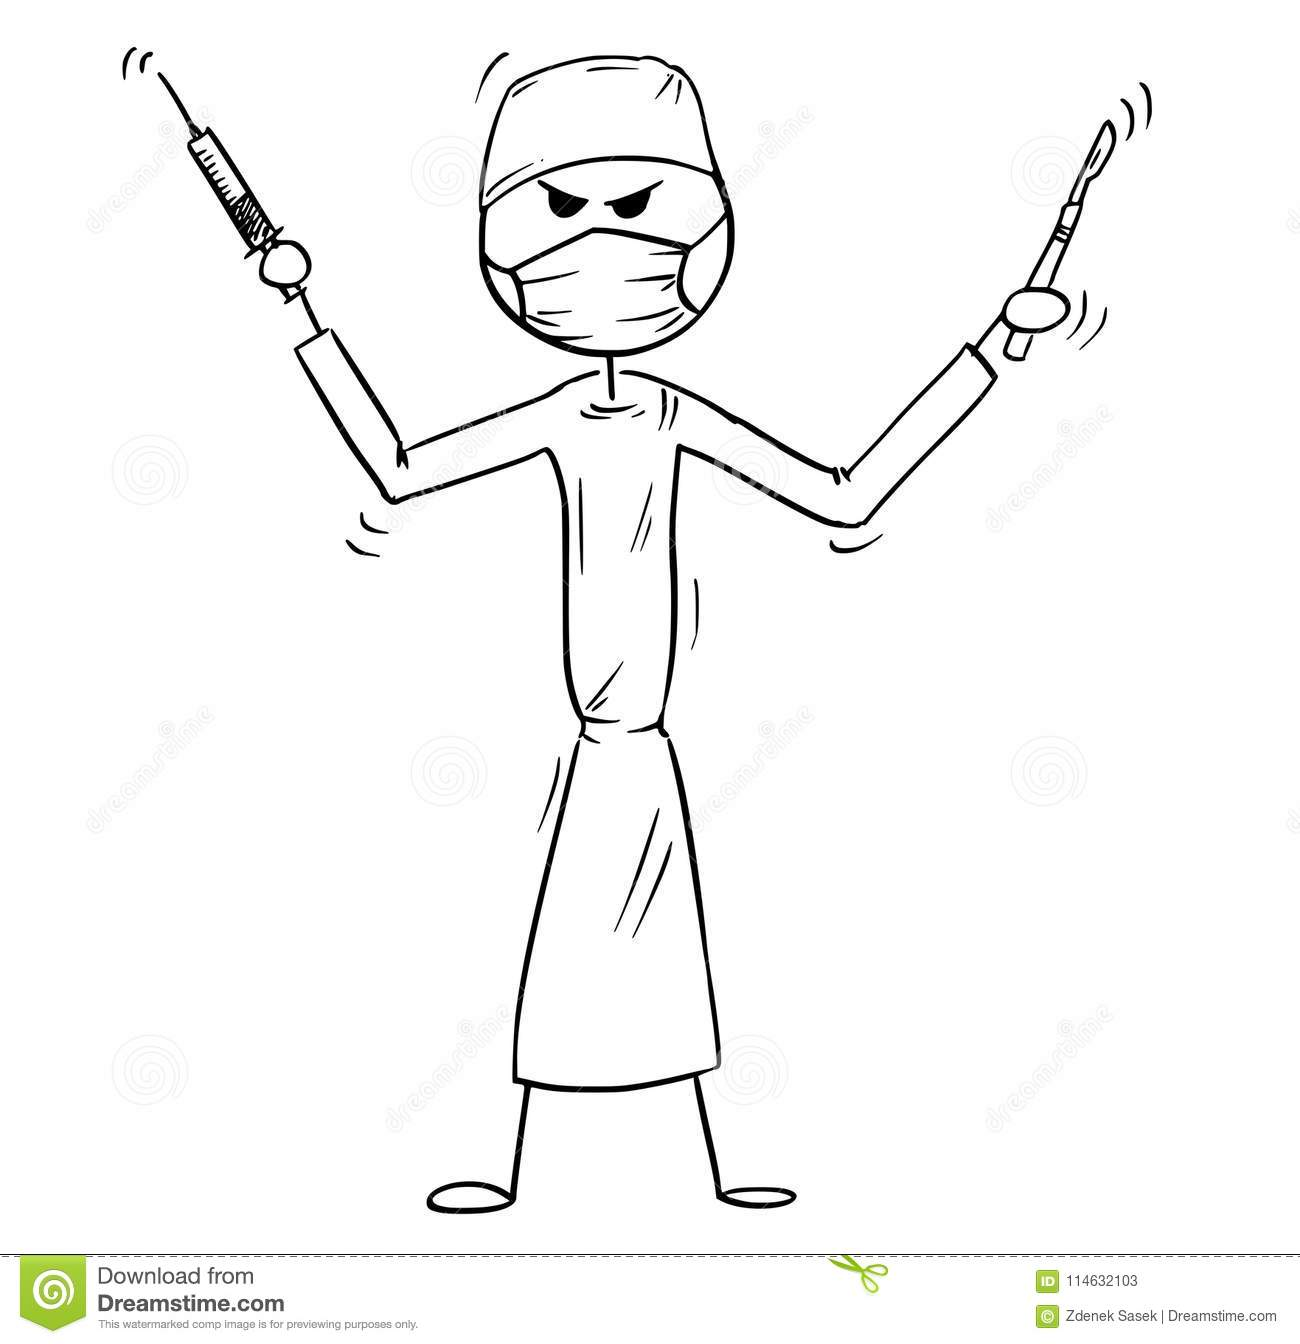 Cartoon Of Crazy Mad Or Insane Doctor Surgeon Holding